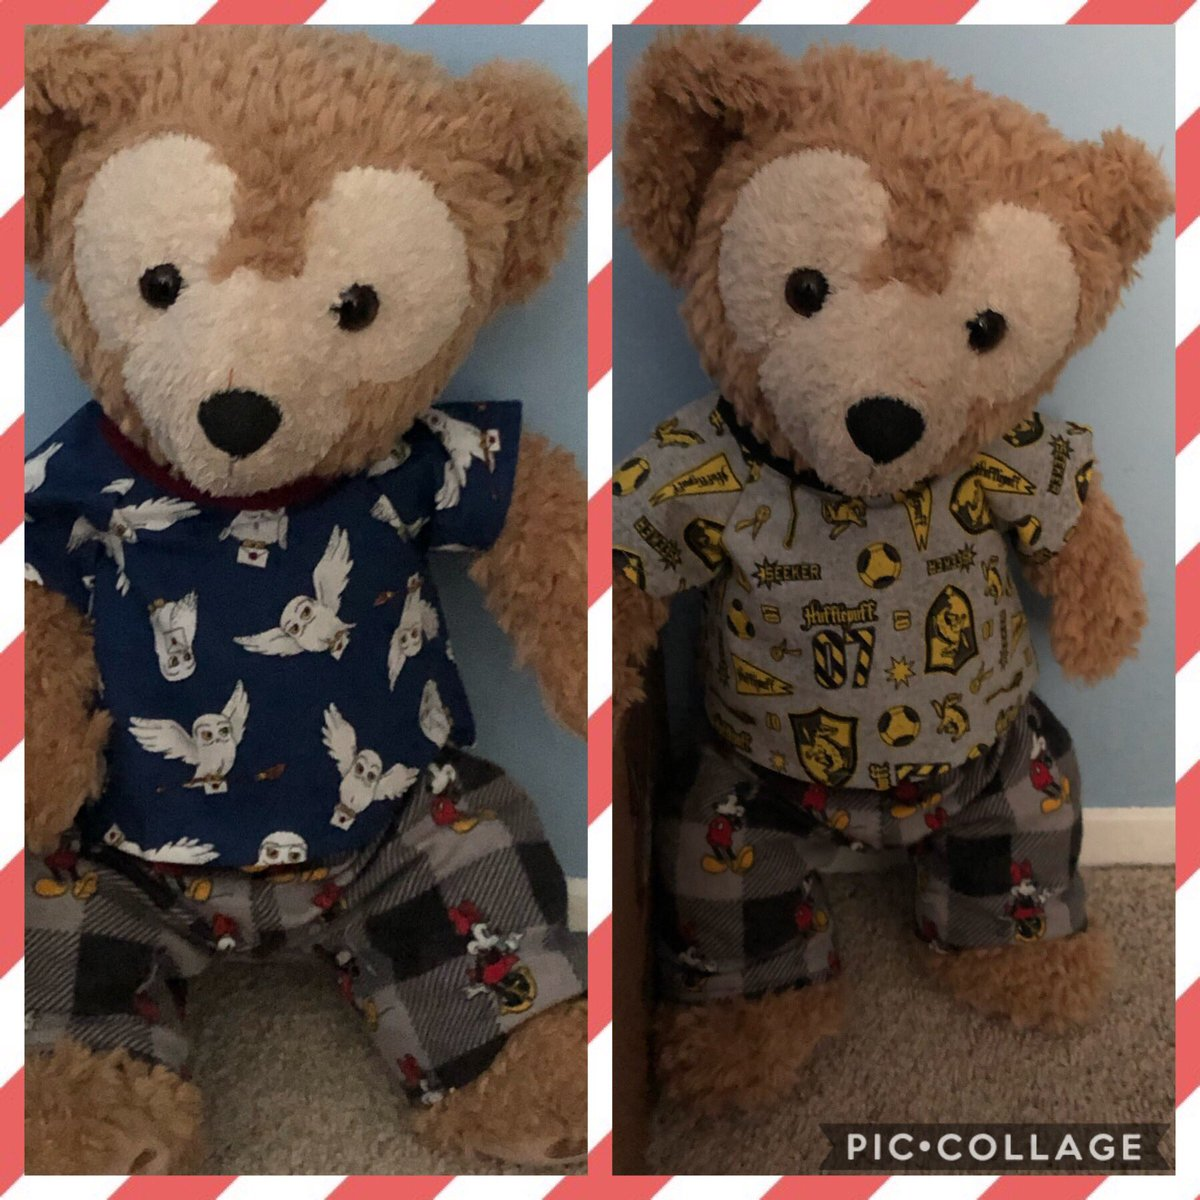 Duffy the Disney bear is looking super magical with his new Harry Potter shirts both me and Duffy are in Hufflepuff 💛🖤💛 and we hope the magical owl on his shirt Will bring me my Hogwarts letter 🦉 🧸🦉 @CraftyShellie #duffythedisneybear #hufflepuff #Harrypotterforever